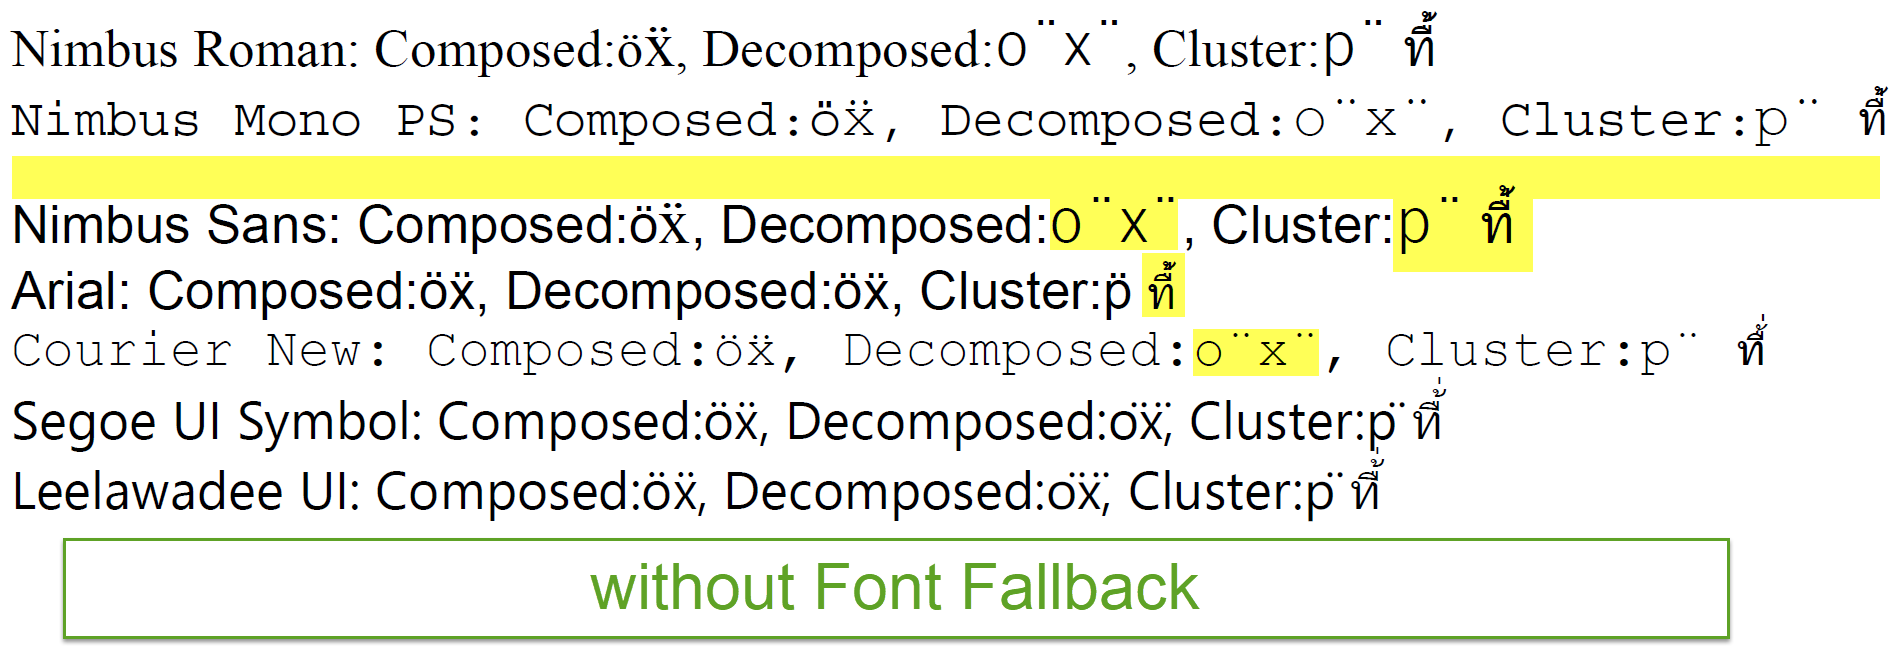 Unicode Combining Characters and Font Fallback | Documents